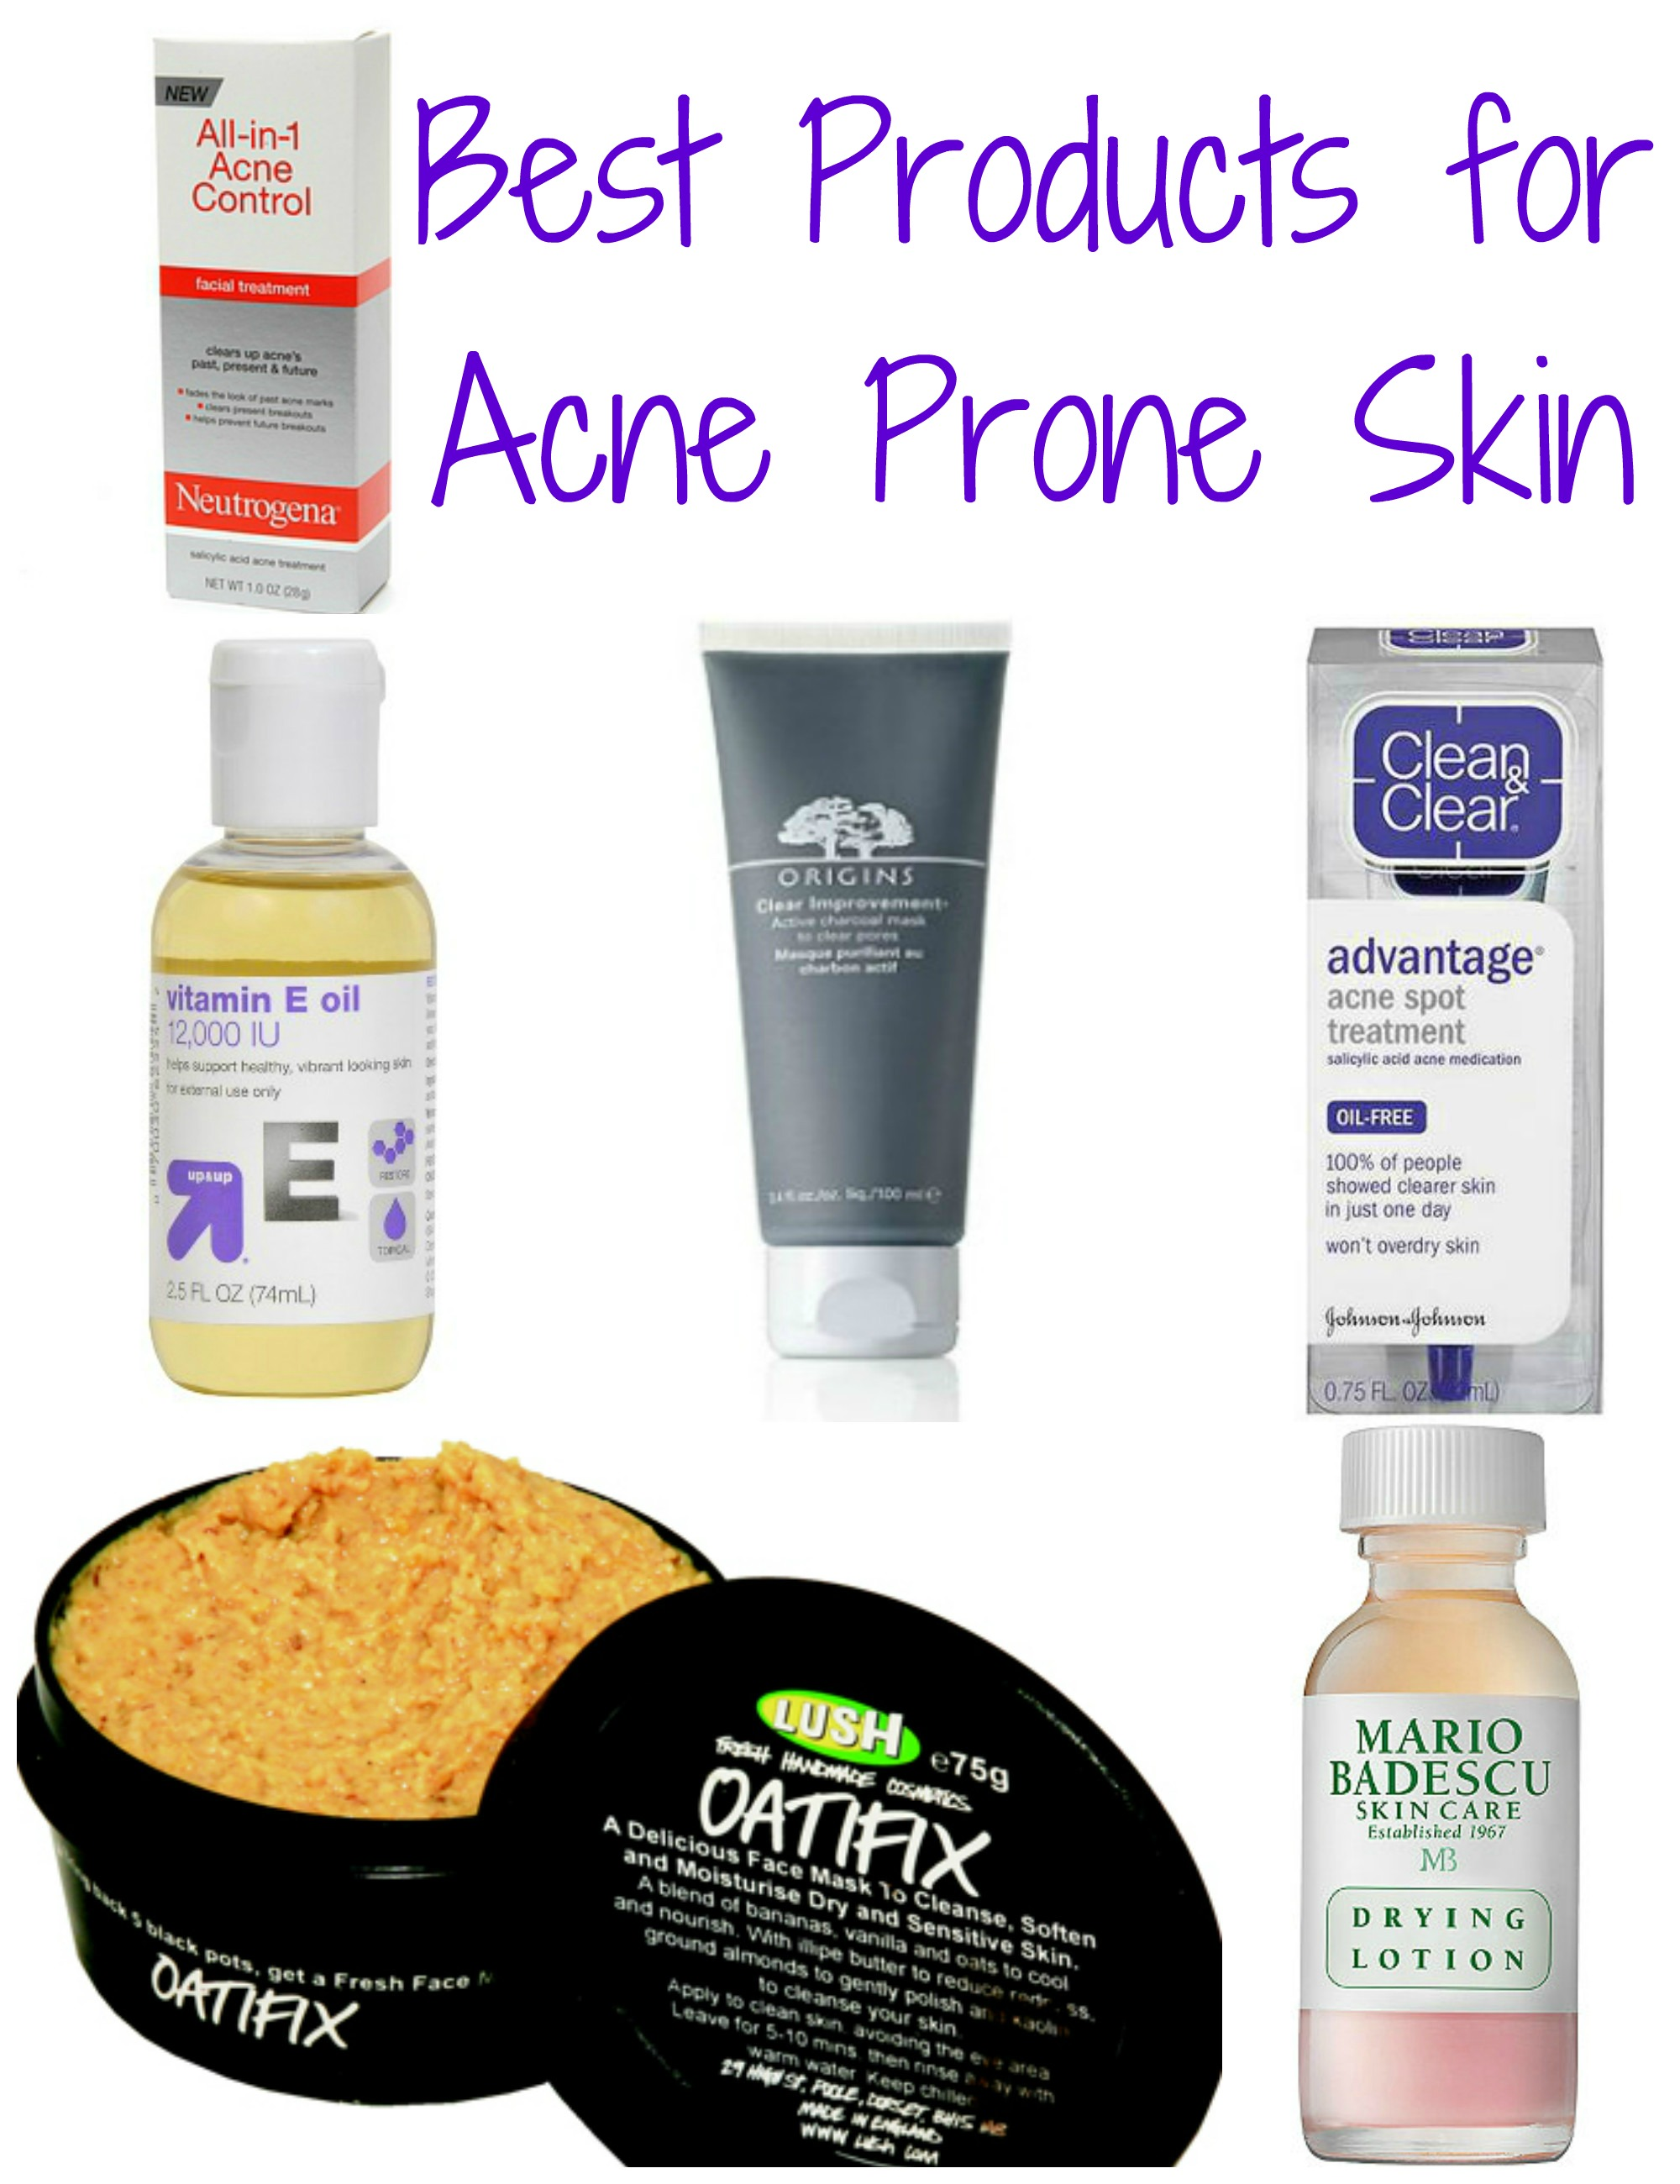 acne skin prone cystic treatment scarring oily treatments care natural breakouts zits dryness masks scar pimple skincare remedies which along